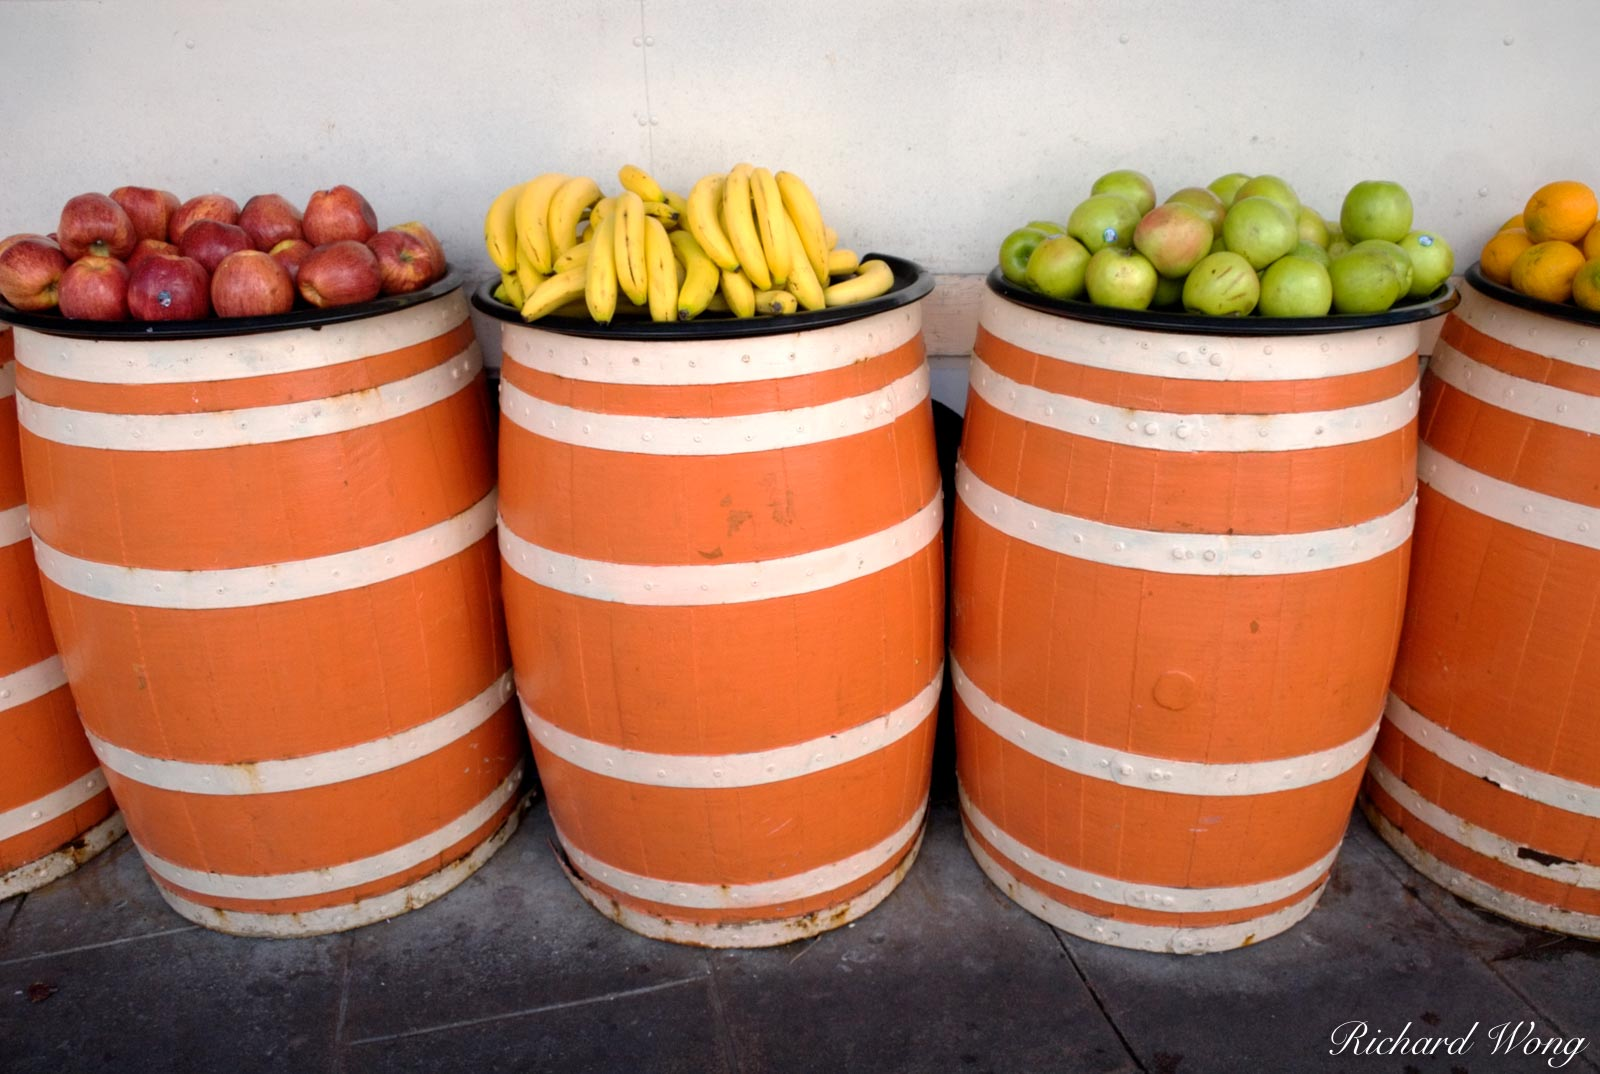 California, Fruits on Barrels at Olvera Street, L.A., colors, fruit, los angeles, market, markets, snack stand, vendor stall, photo, photo